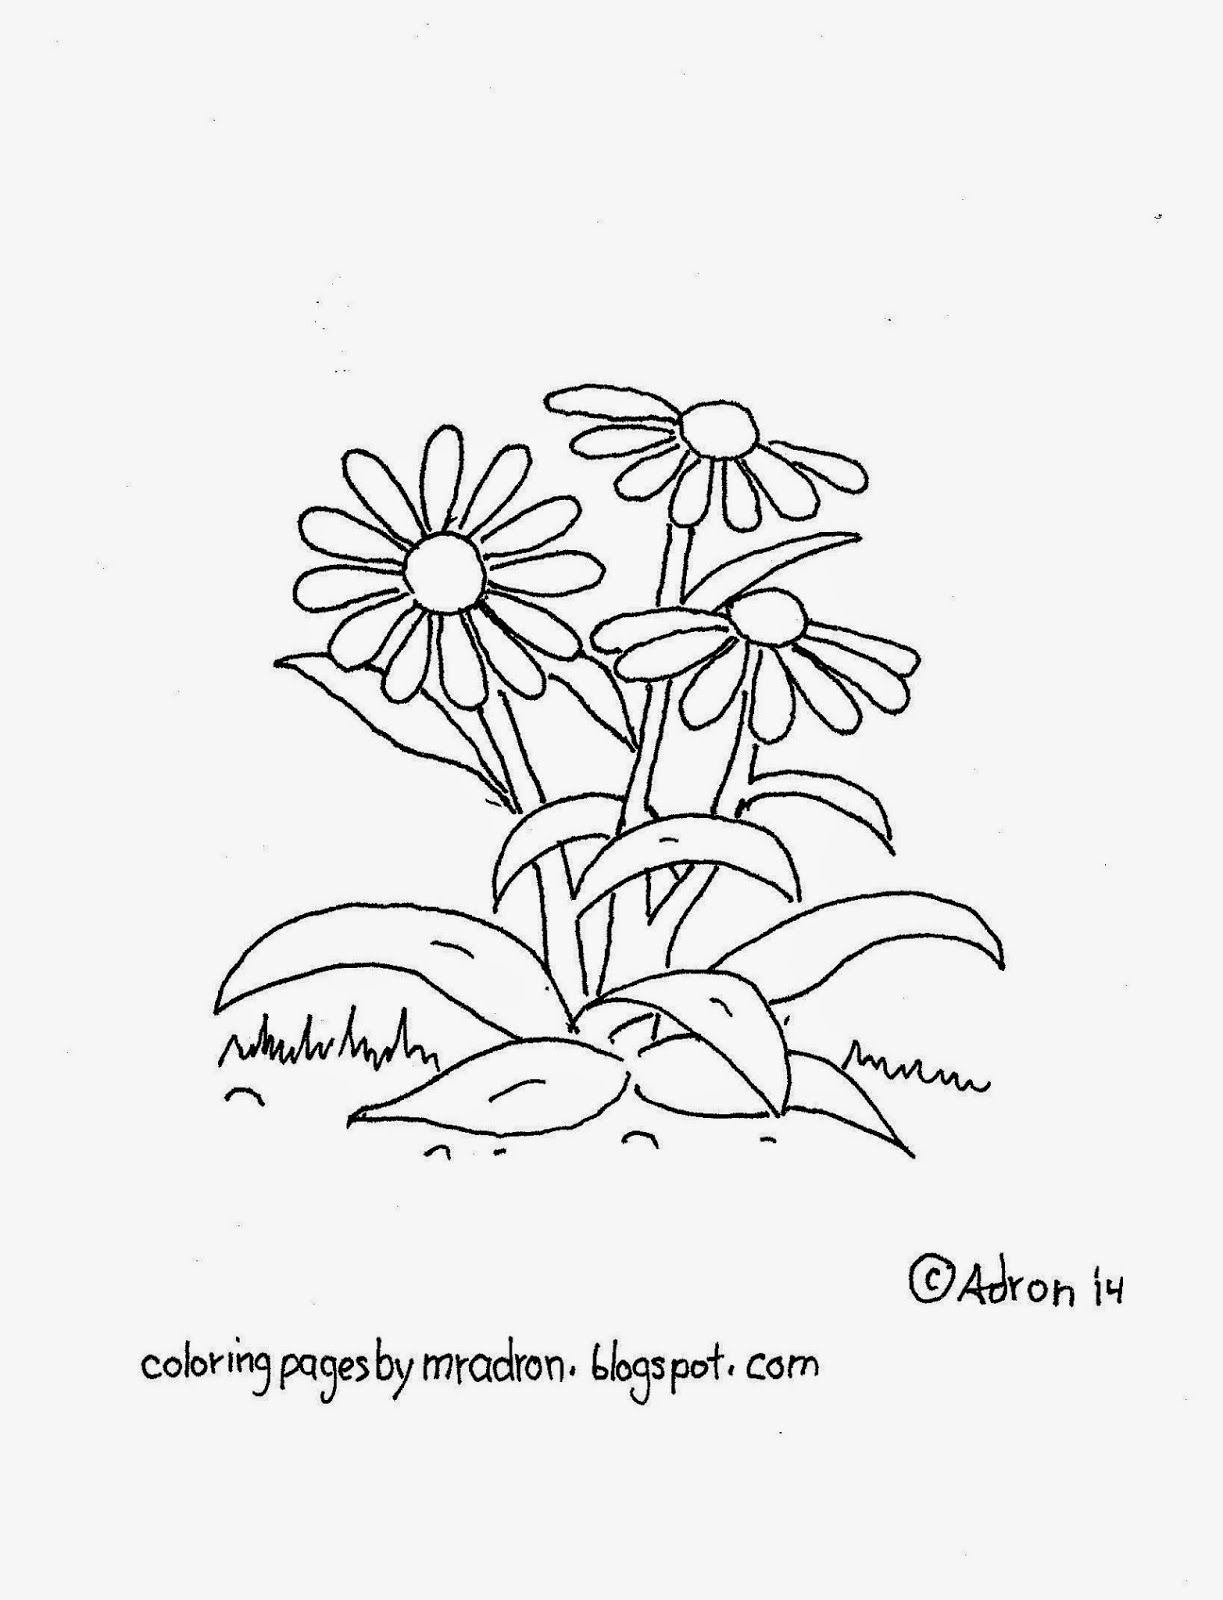 coloring pages for kids by mr adron july 2014